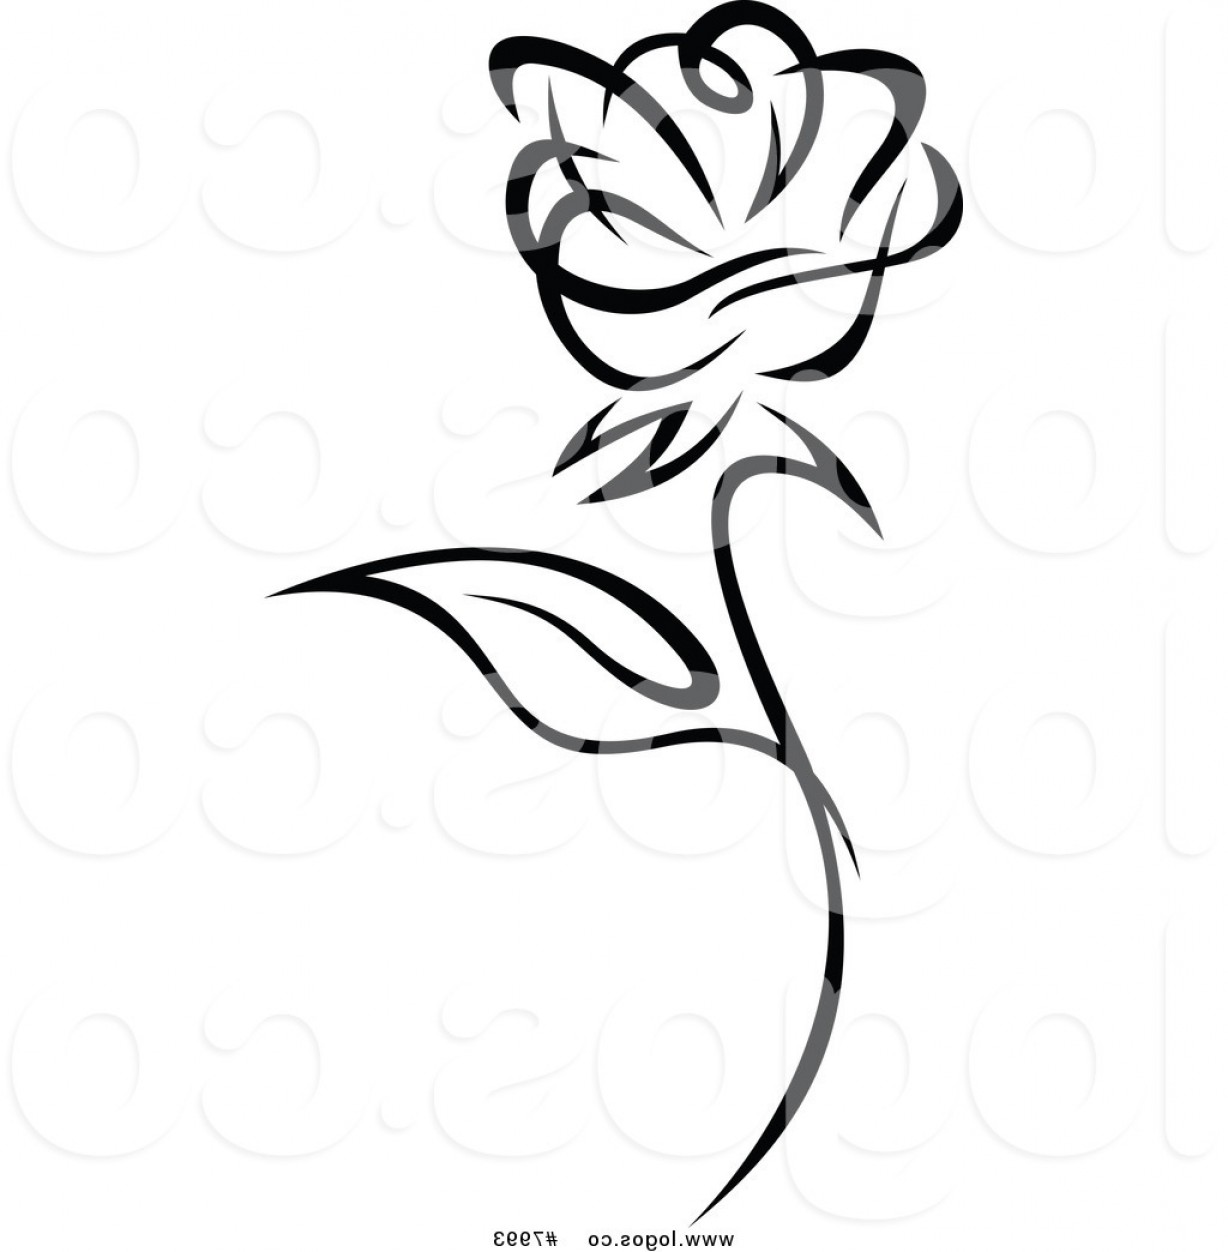 Roses Logo Vector: Royalty Free Clip Art Vector Of A Black And White Rose Logo By Vector Tradition Sm